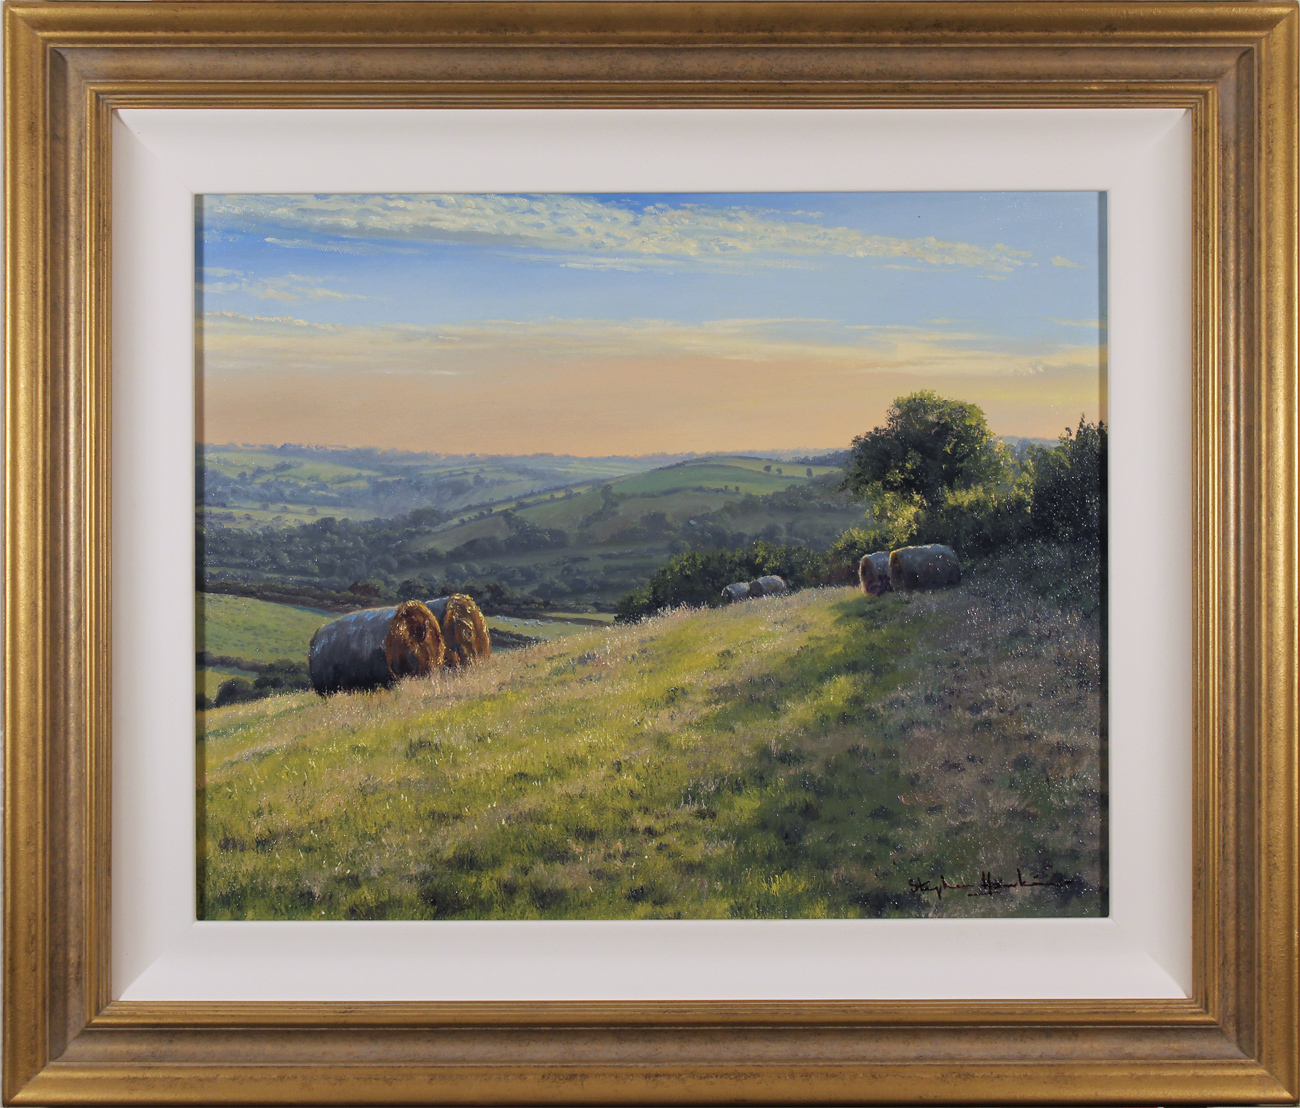 Stephen Hawkins, Original oil painting on canvas, Hay Bales, Yorkshire Wolds, click to enlarge